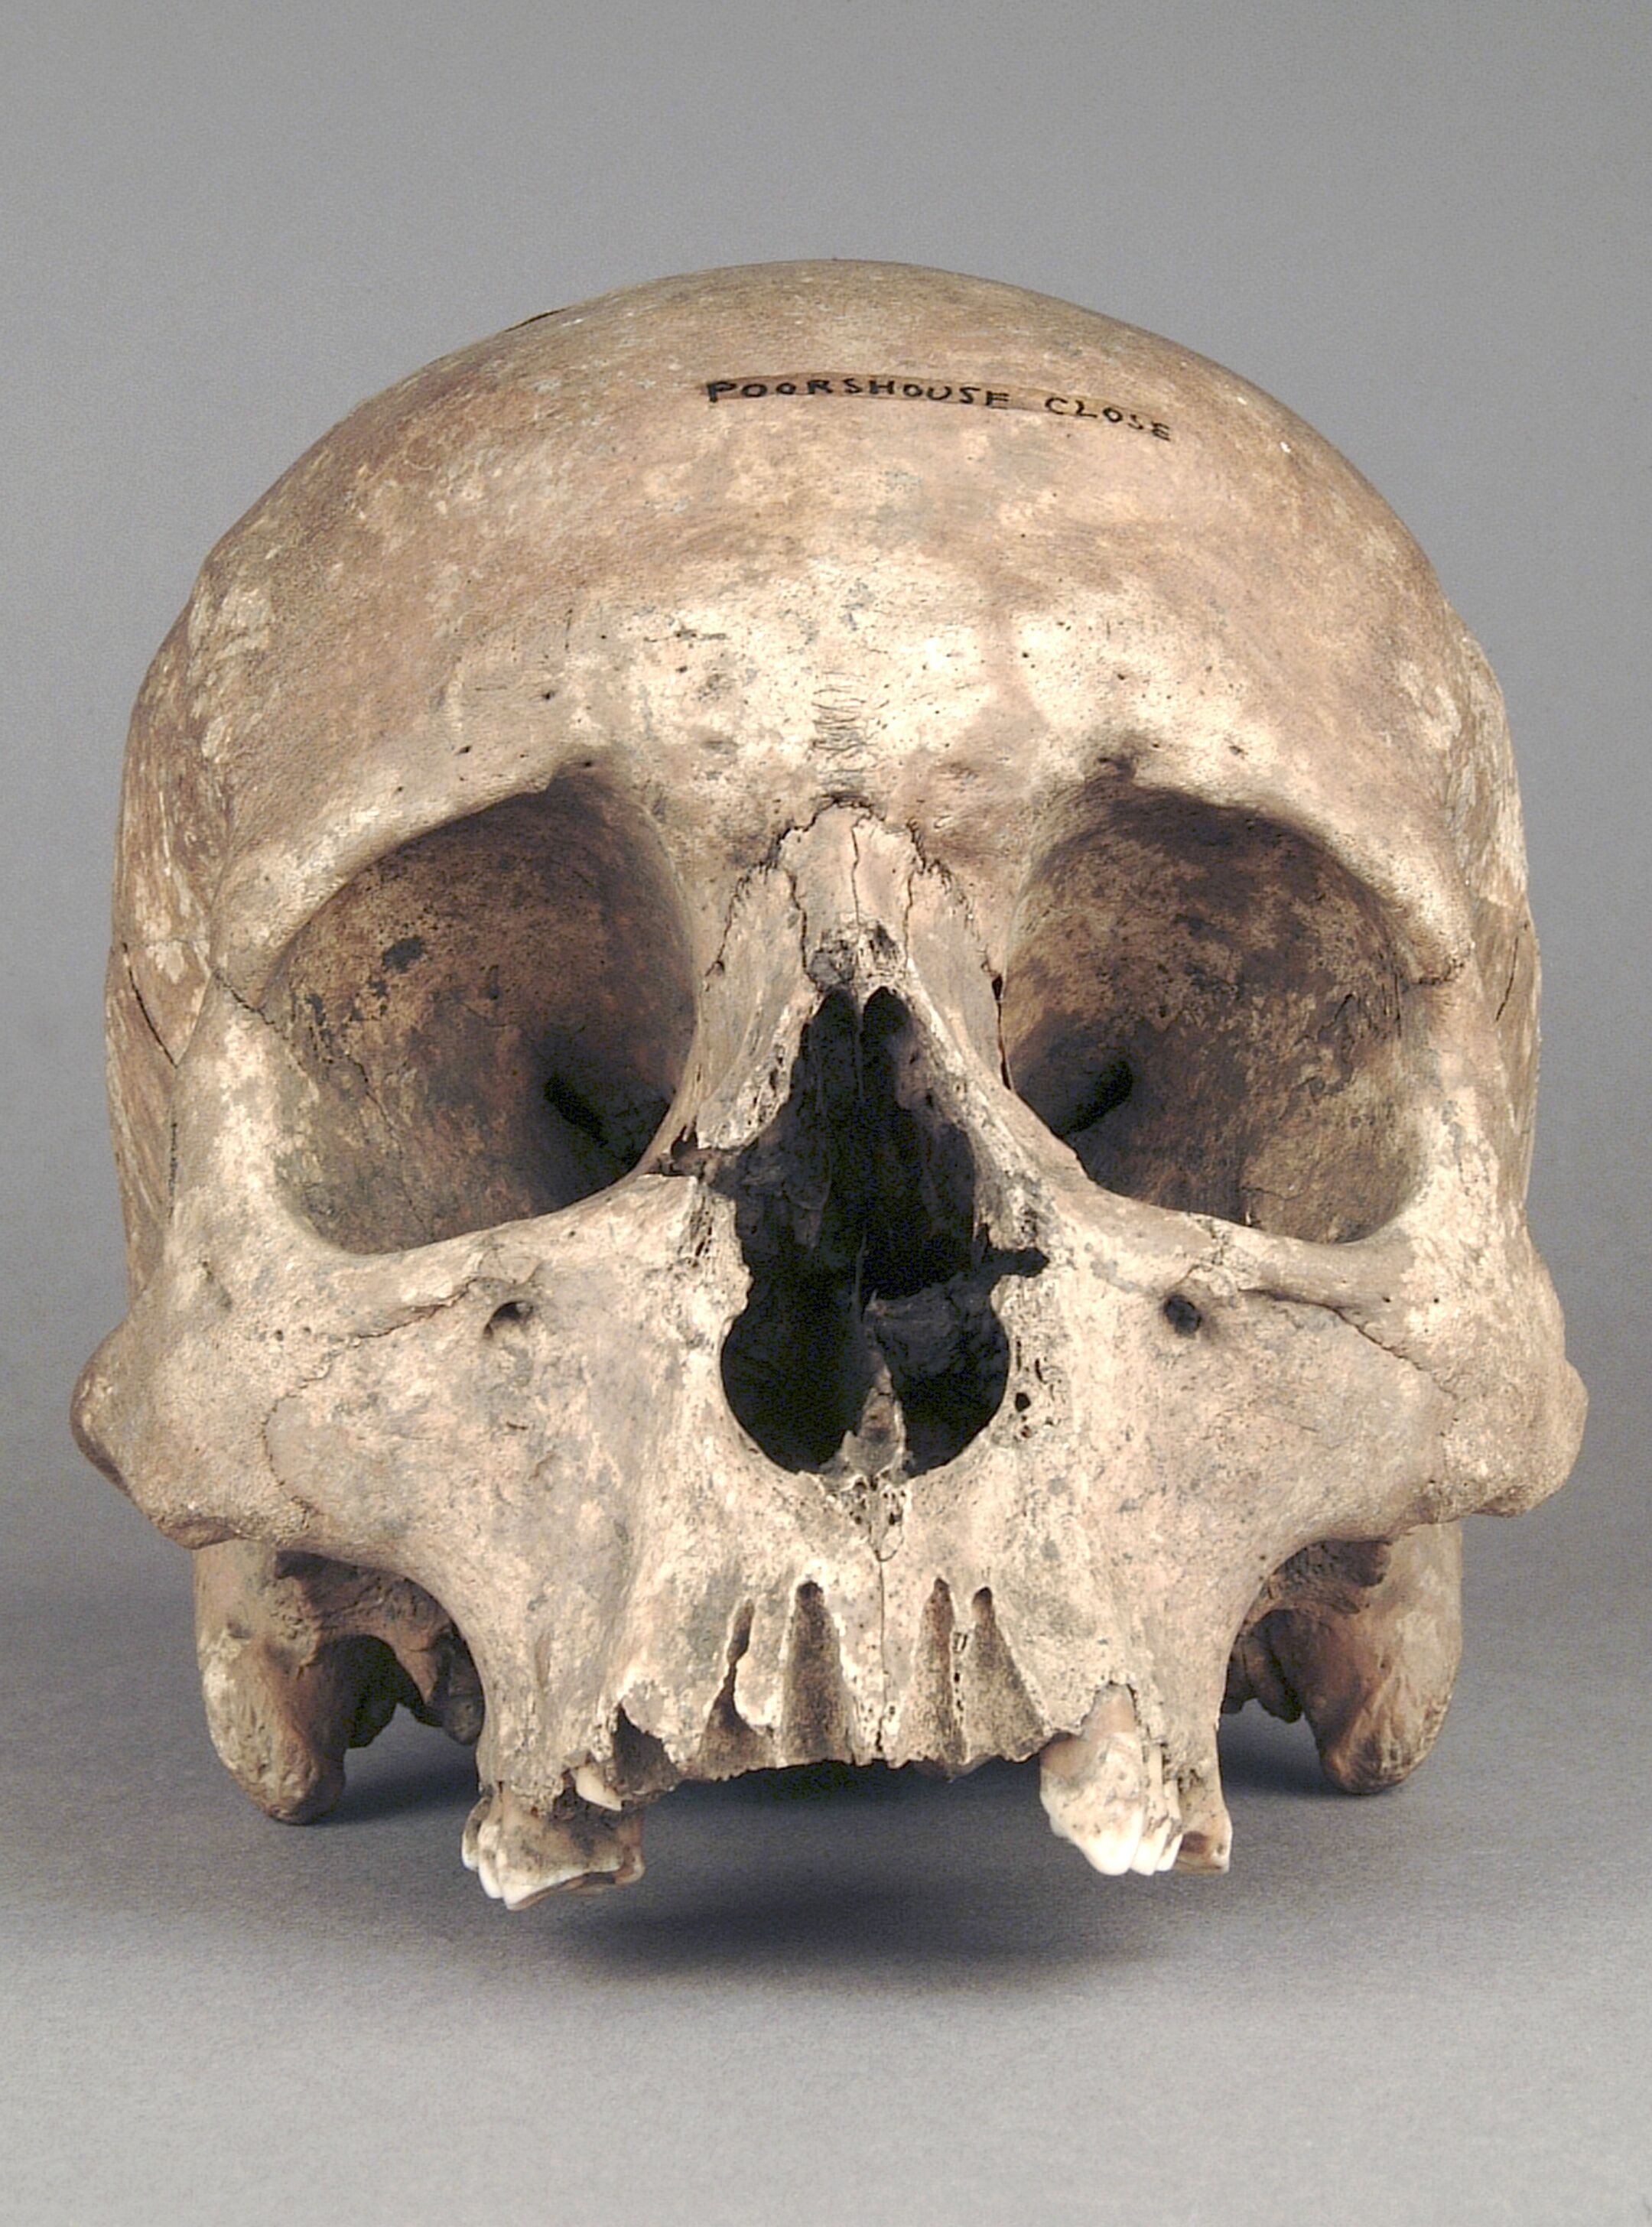 Real Human Skull Front View Real Human Skull Homo Pictures To Pin On